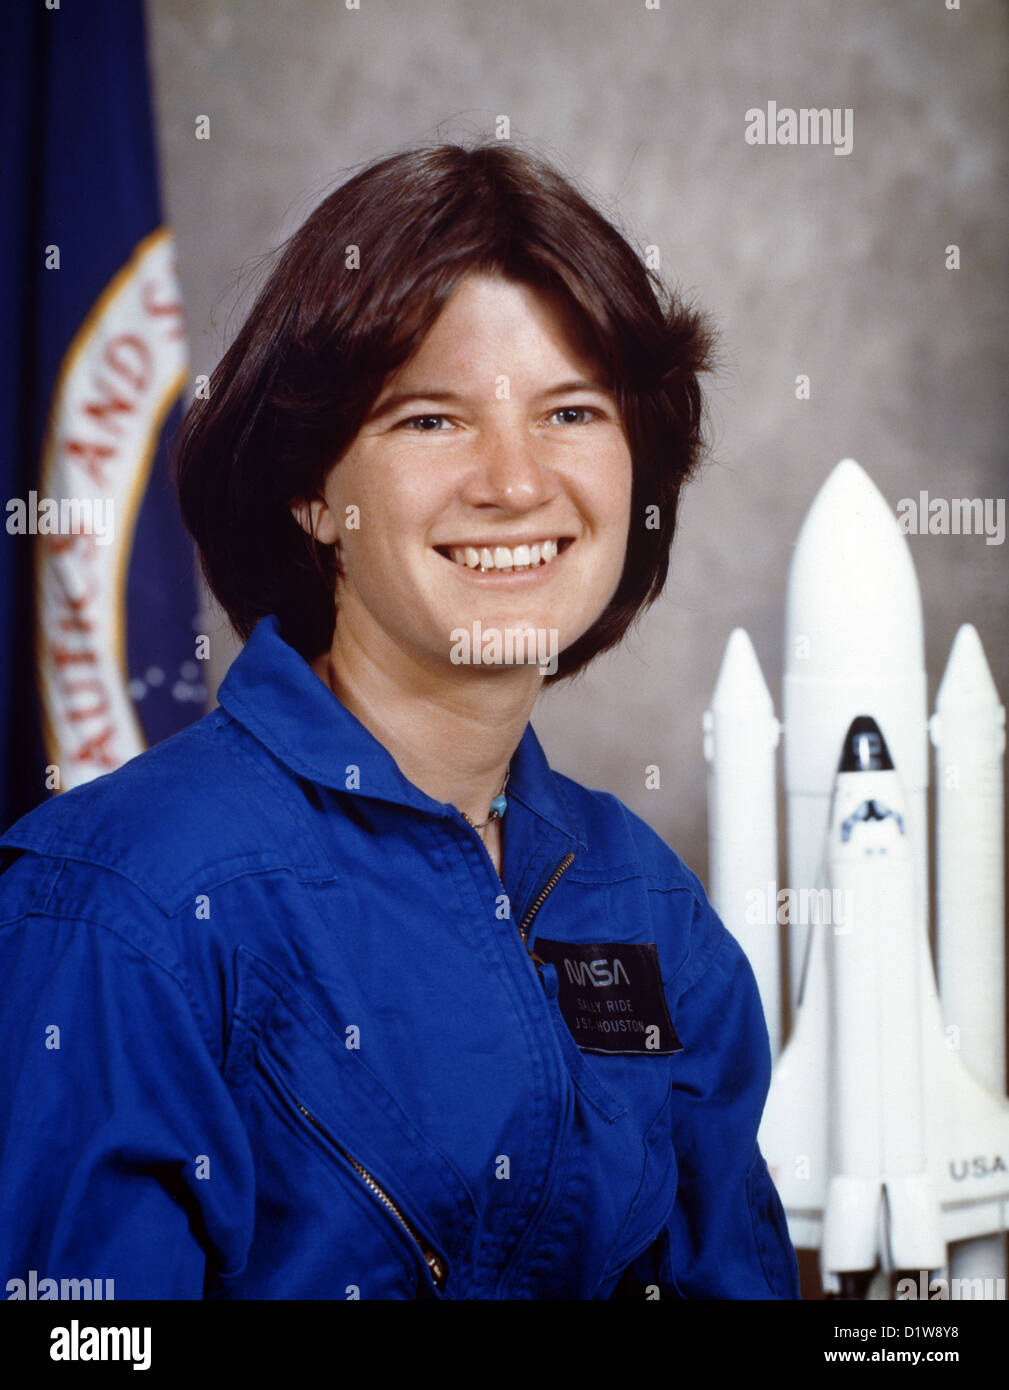 Sally Ride, Sally Kristen Ride, American physicist and astronaut. - Stock Image